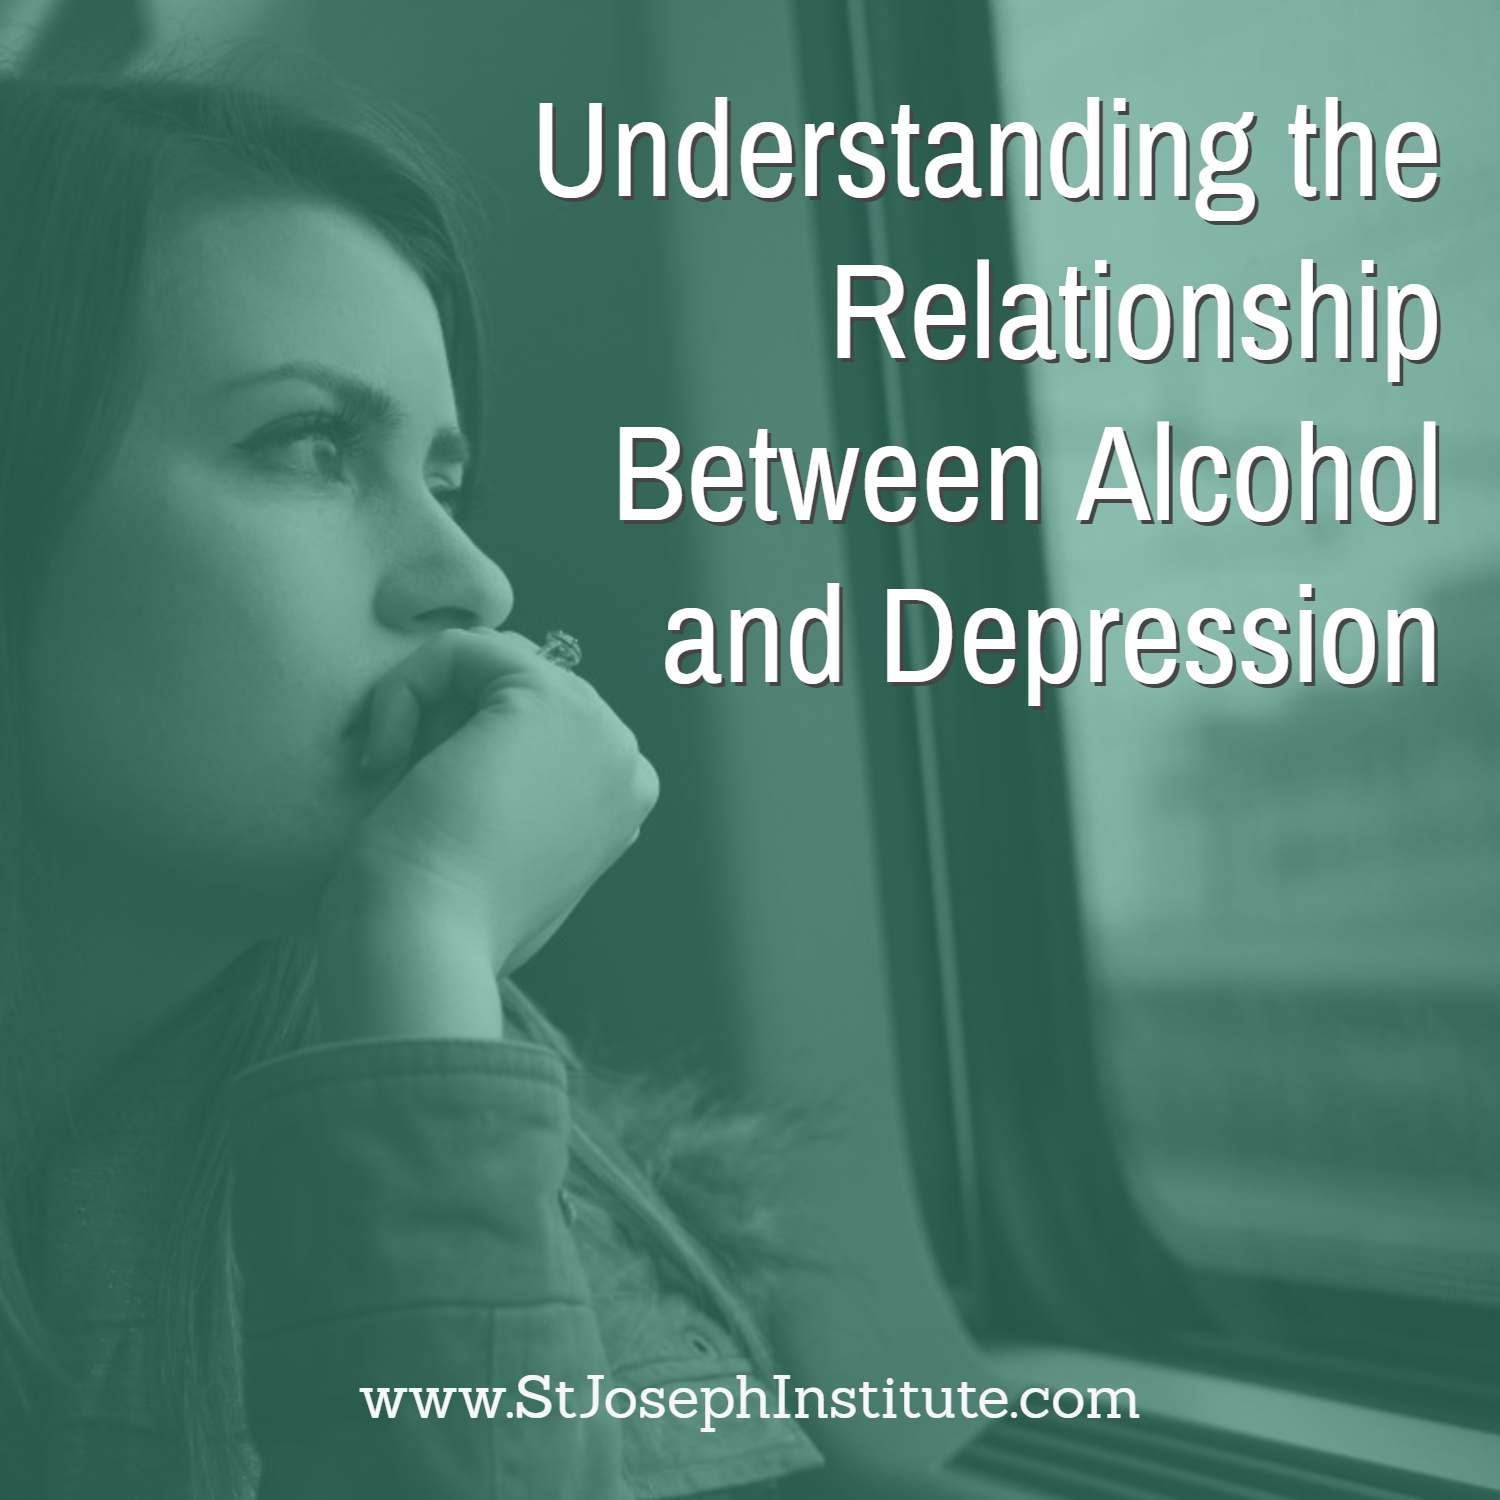 sad woman looking out train window - Understanding the relationship between alcohol and depression